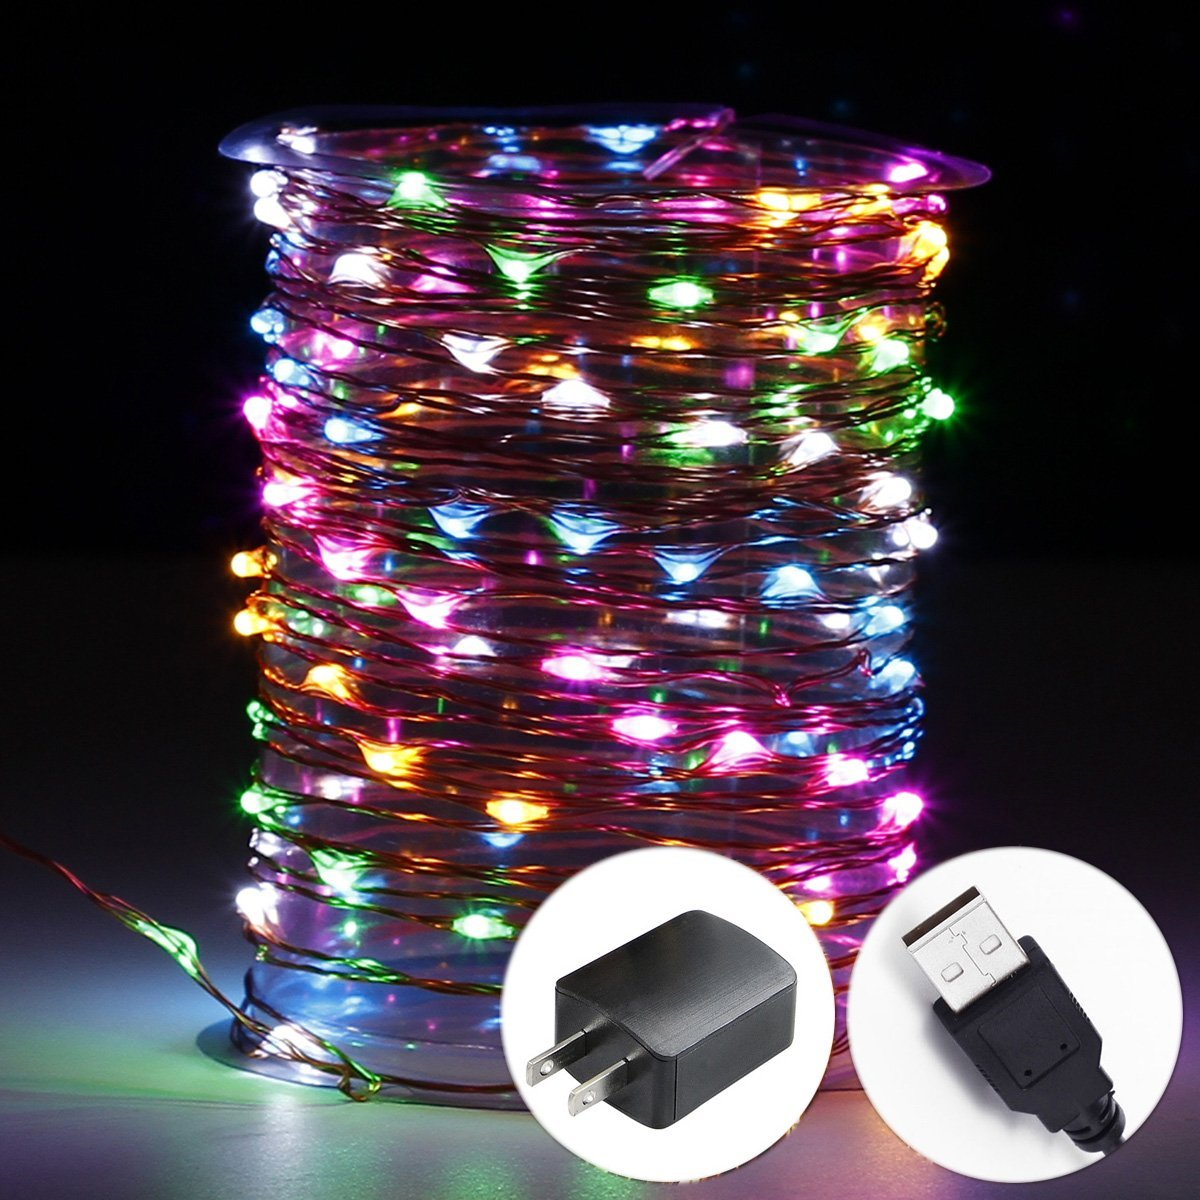 innotree LED String Lights, USB Plug in Fairy Lights, 33 ft 100 LED Copper Lights, Starry Lights, Waterproof Decorative Lights for DIY Bedroom, Garden, Party, Wedding(UL Adapter, Multi Color)